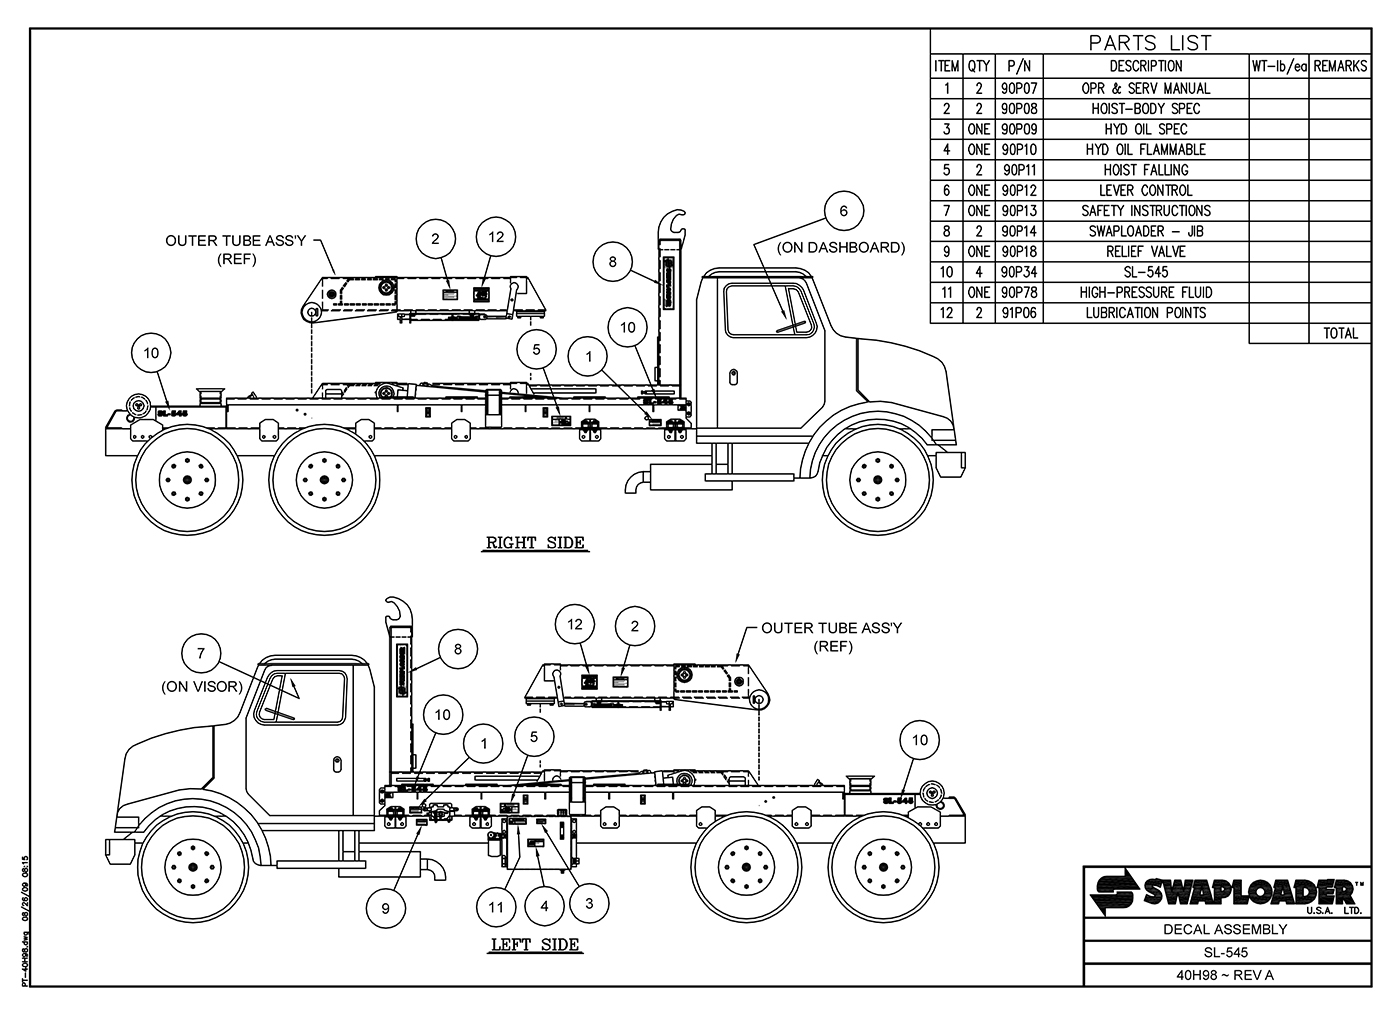 SL-545 Decal Assembly Diagram